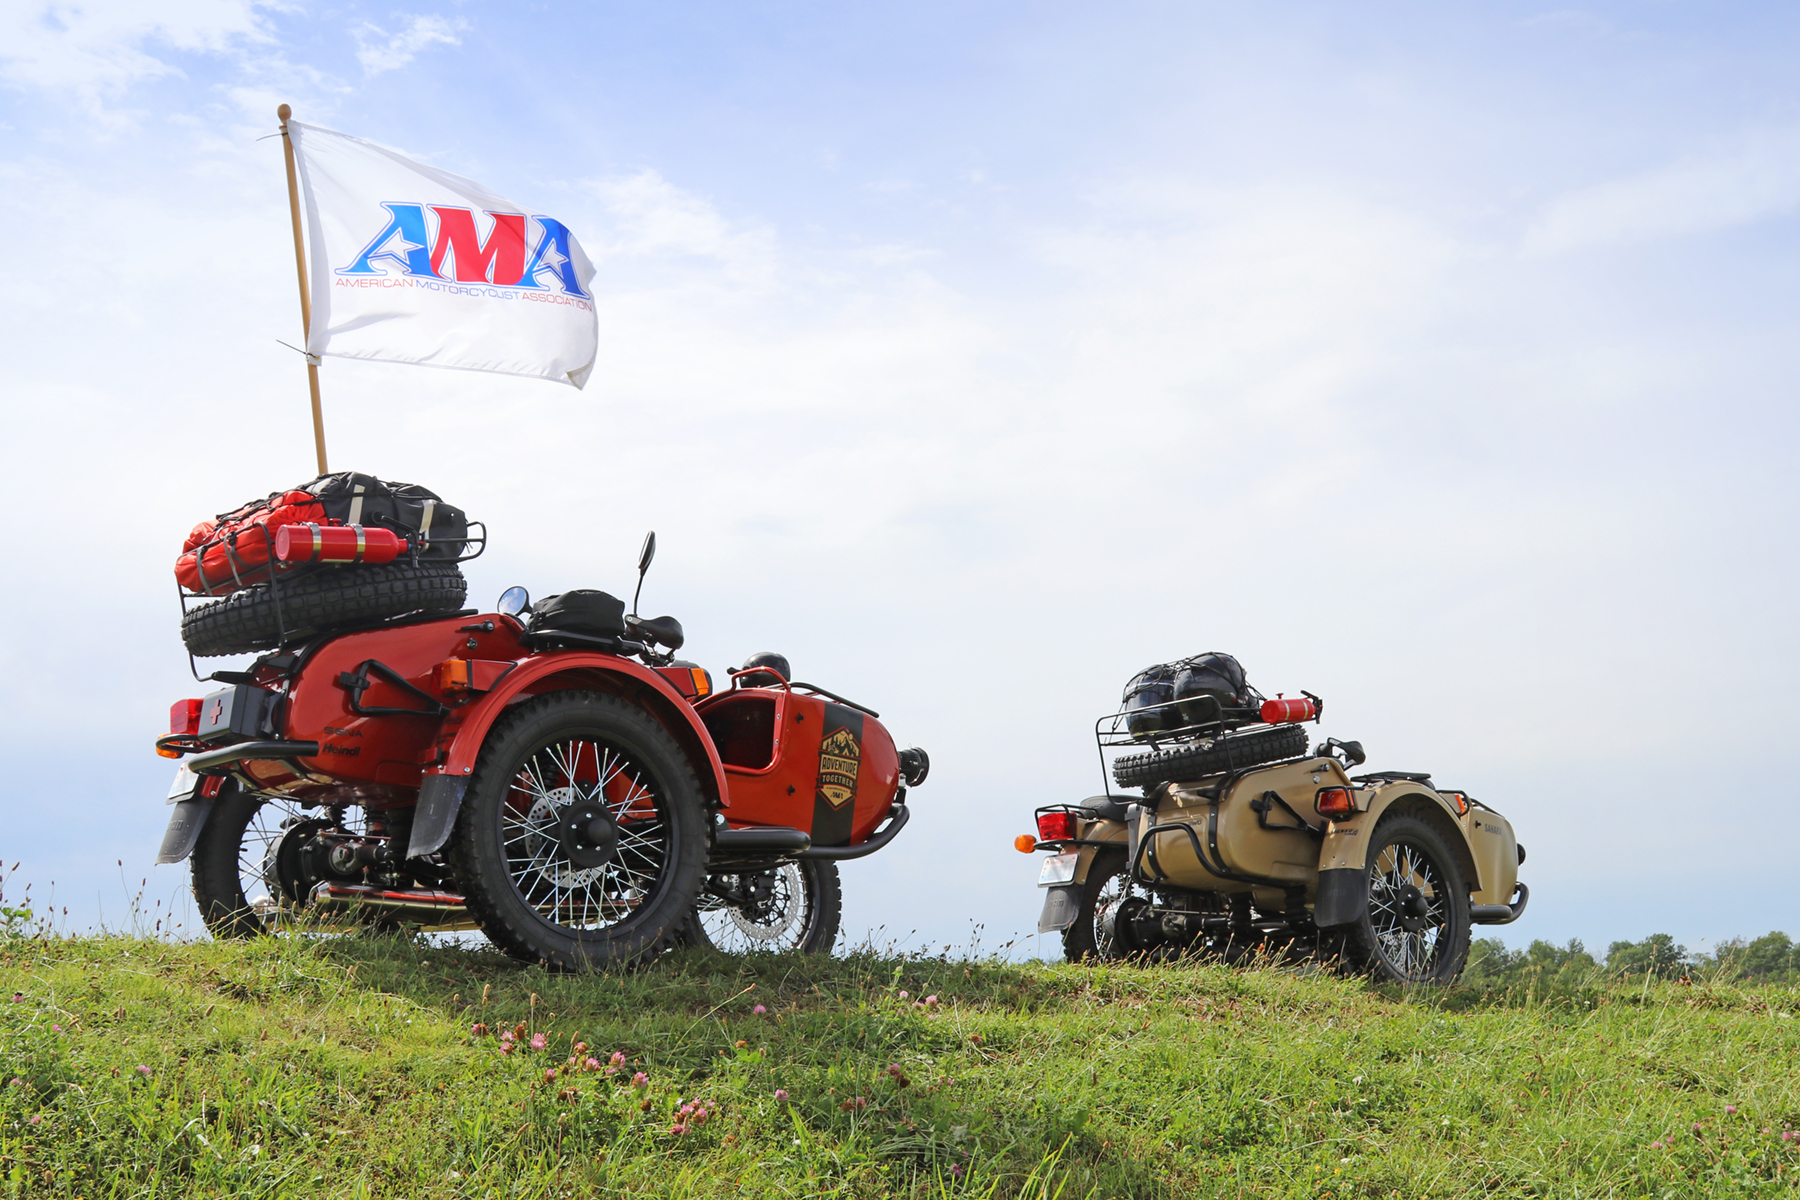 Ural Gear-Up Sidecar Motorcycles